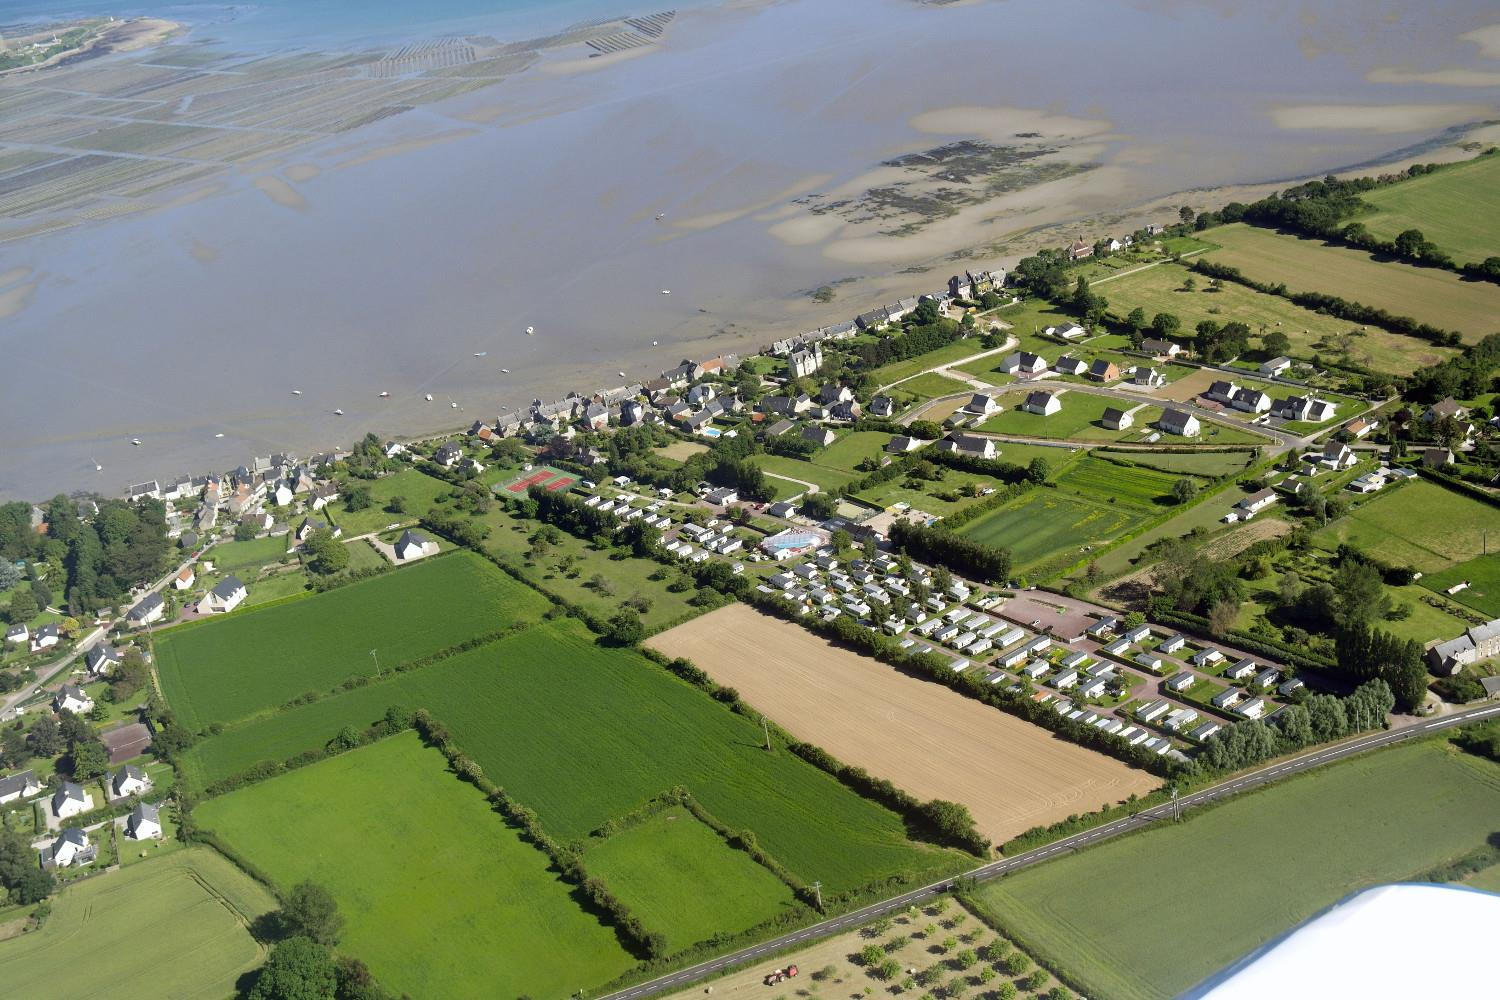 Camping le Rivage, Quettehou, Manche